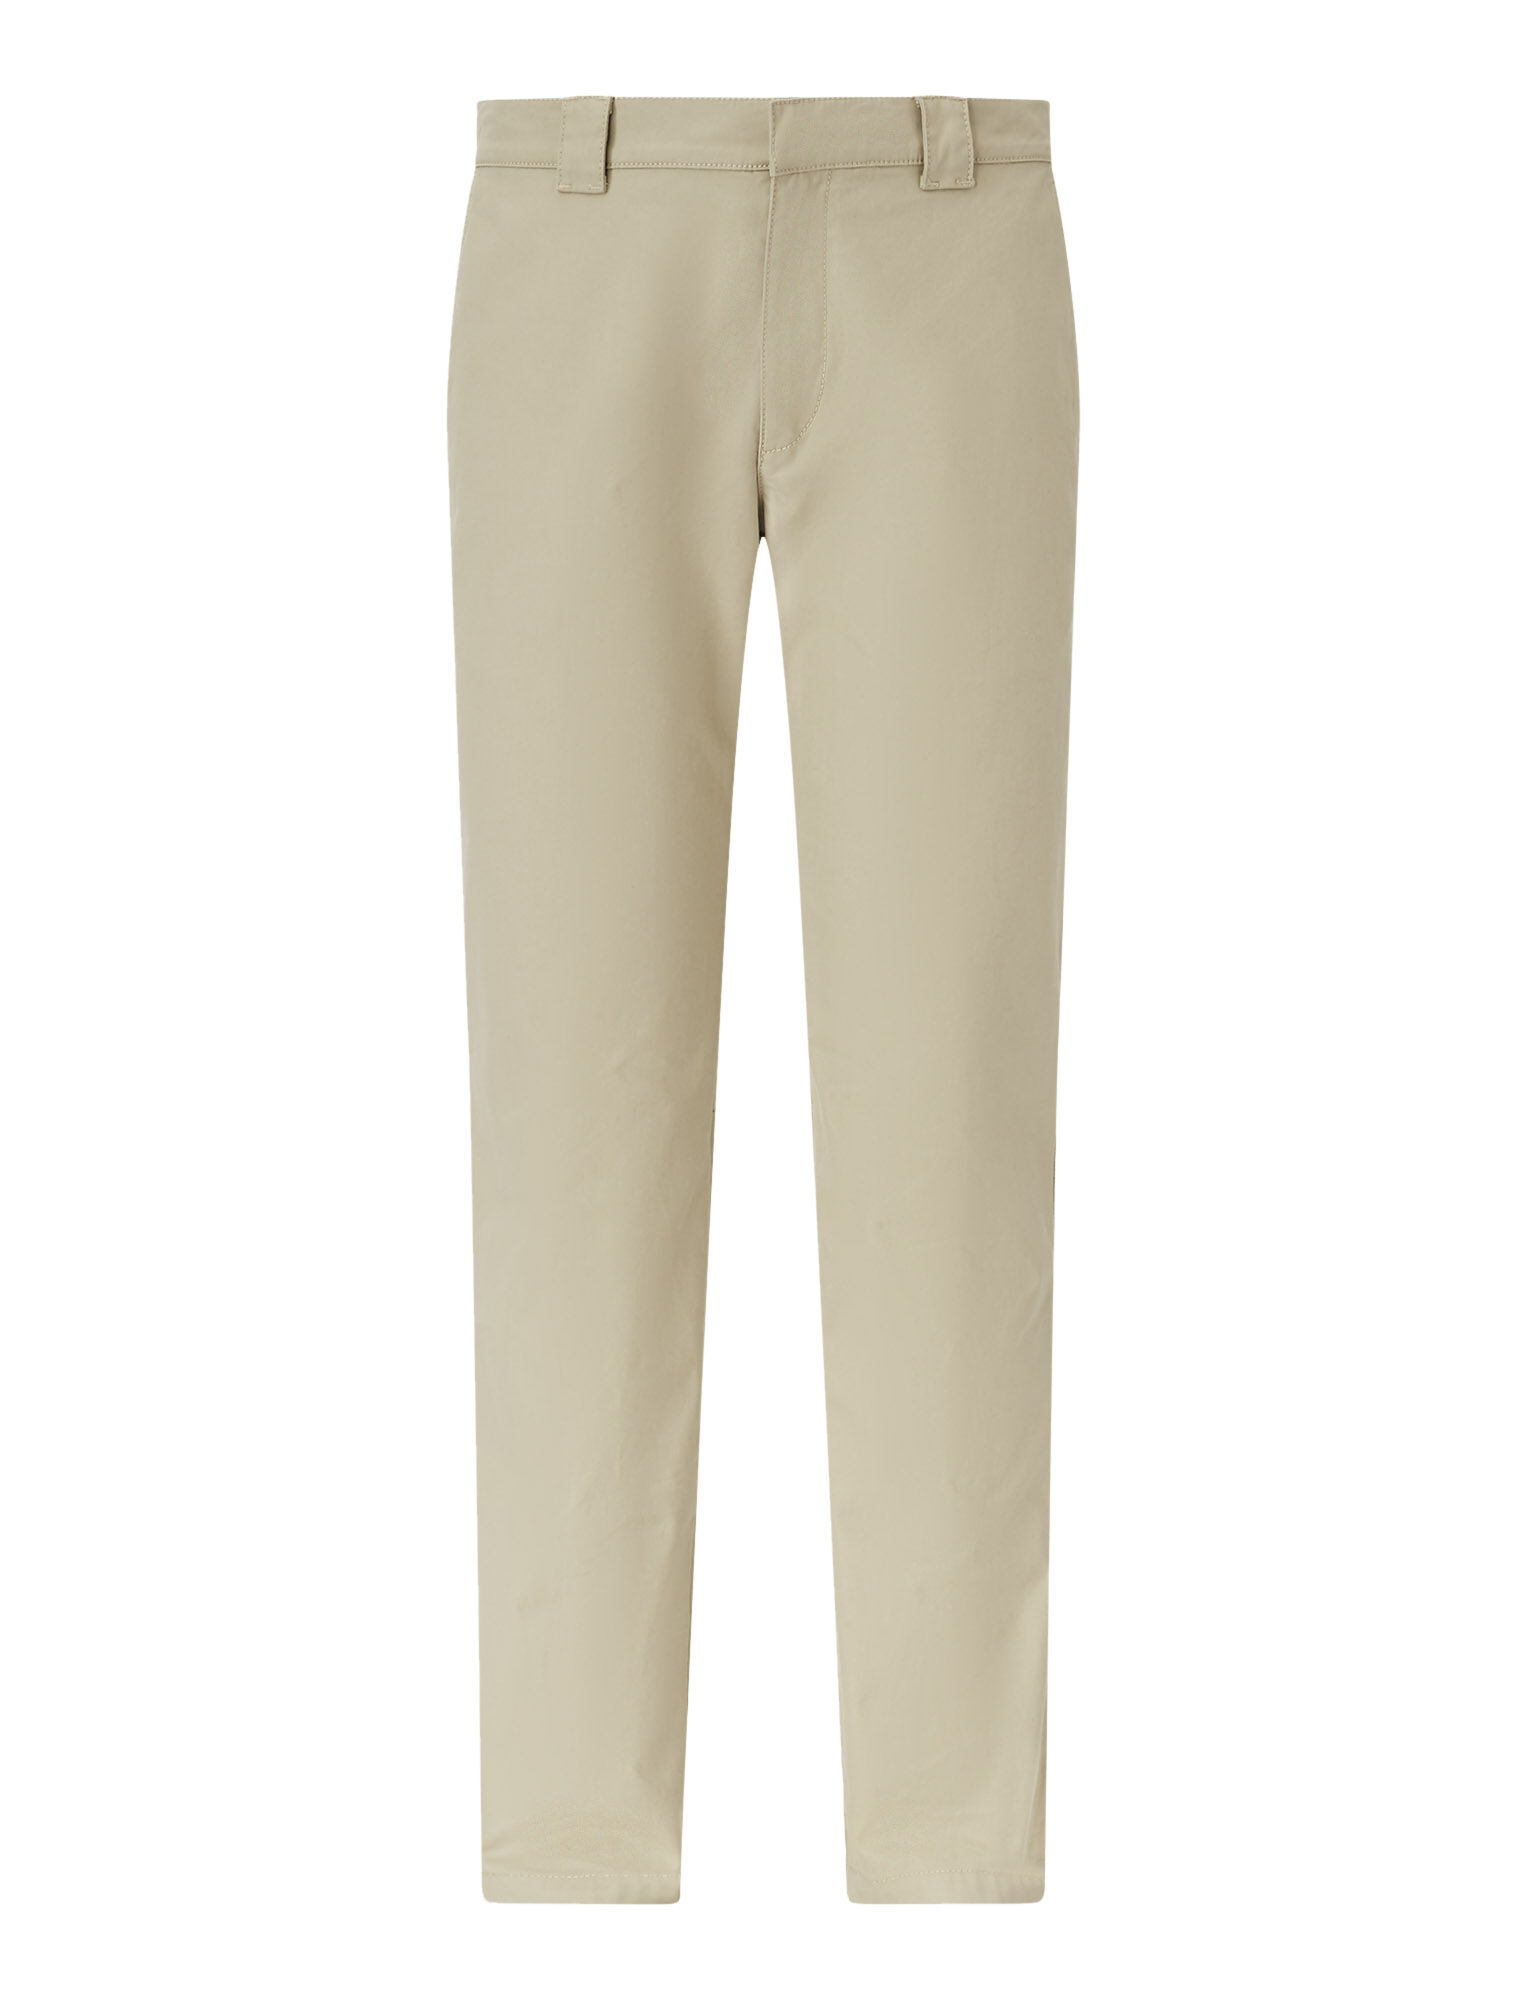 Joseph, Weymouth Workers Twill Trousers, in SAND